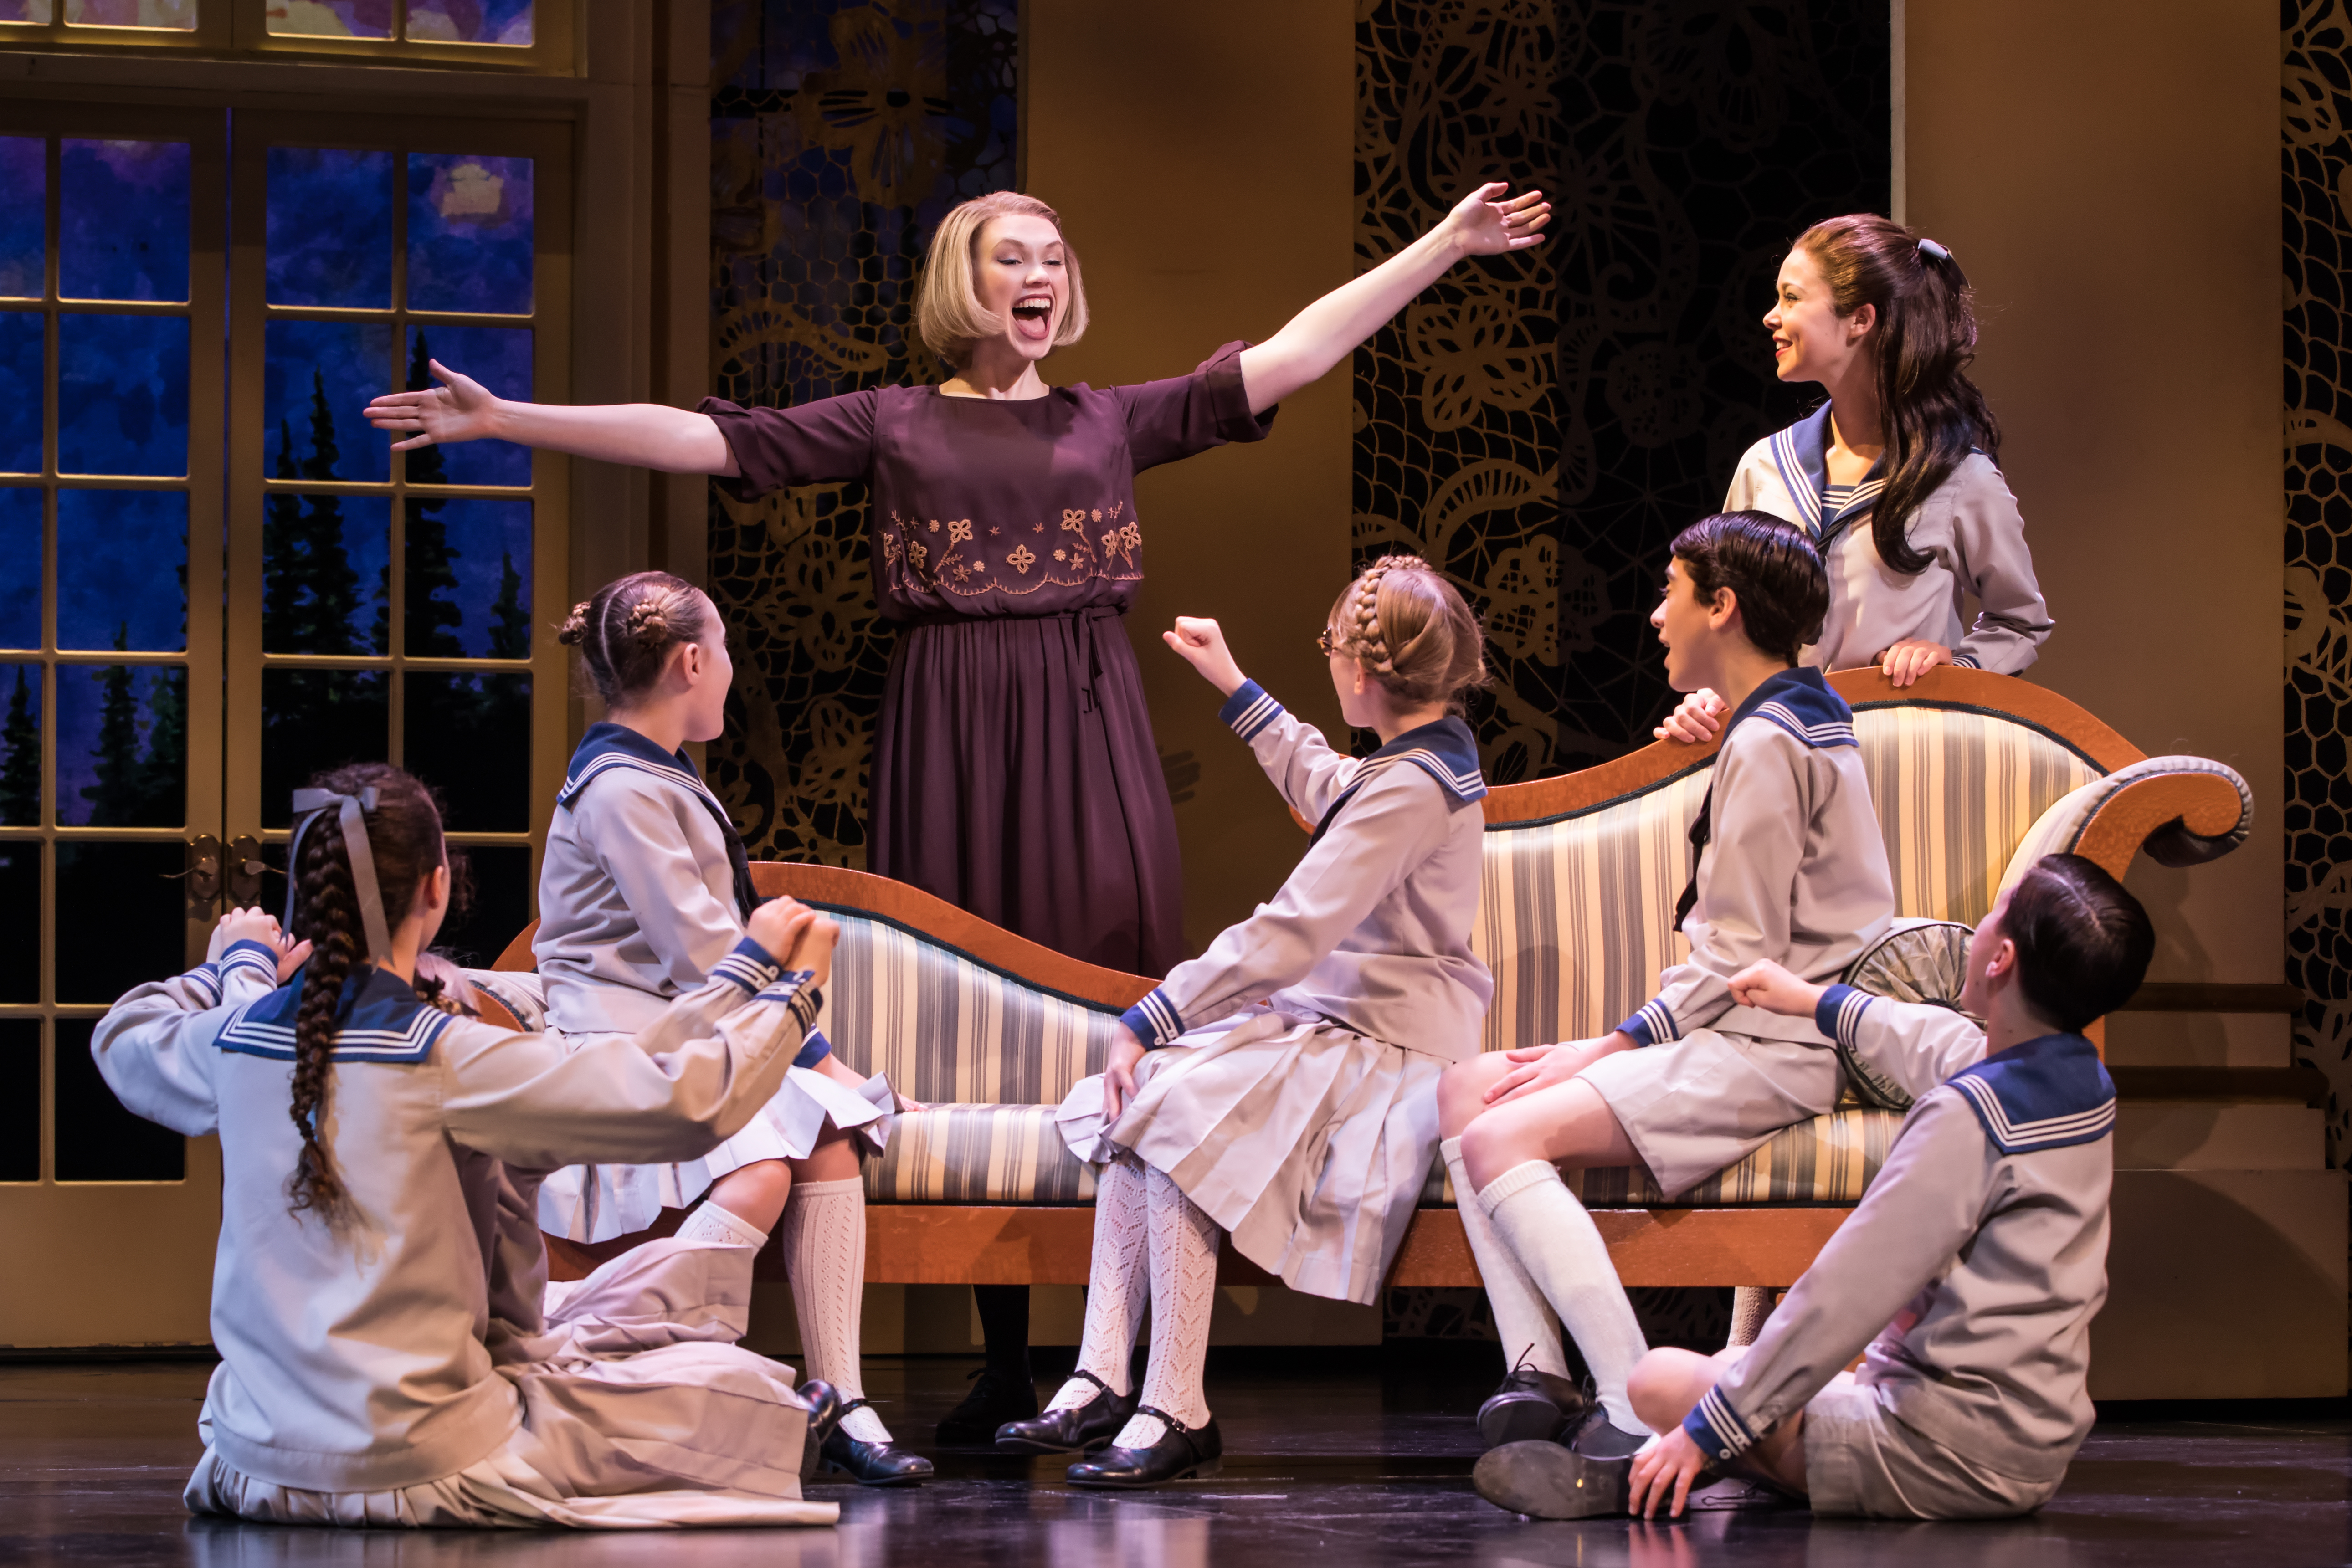 BWW Review: THE SOUND OF MUSIC Delights at Tennessee Performing Arts Center